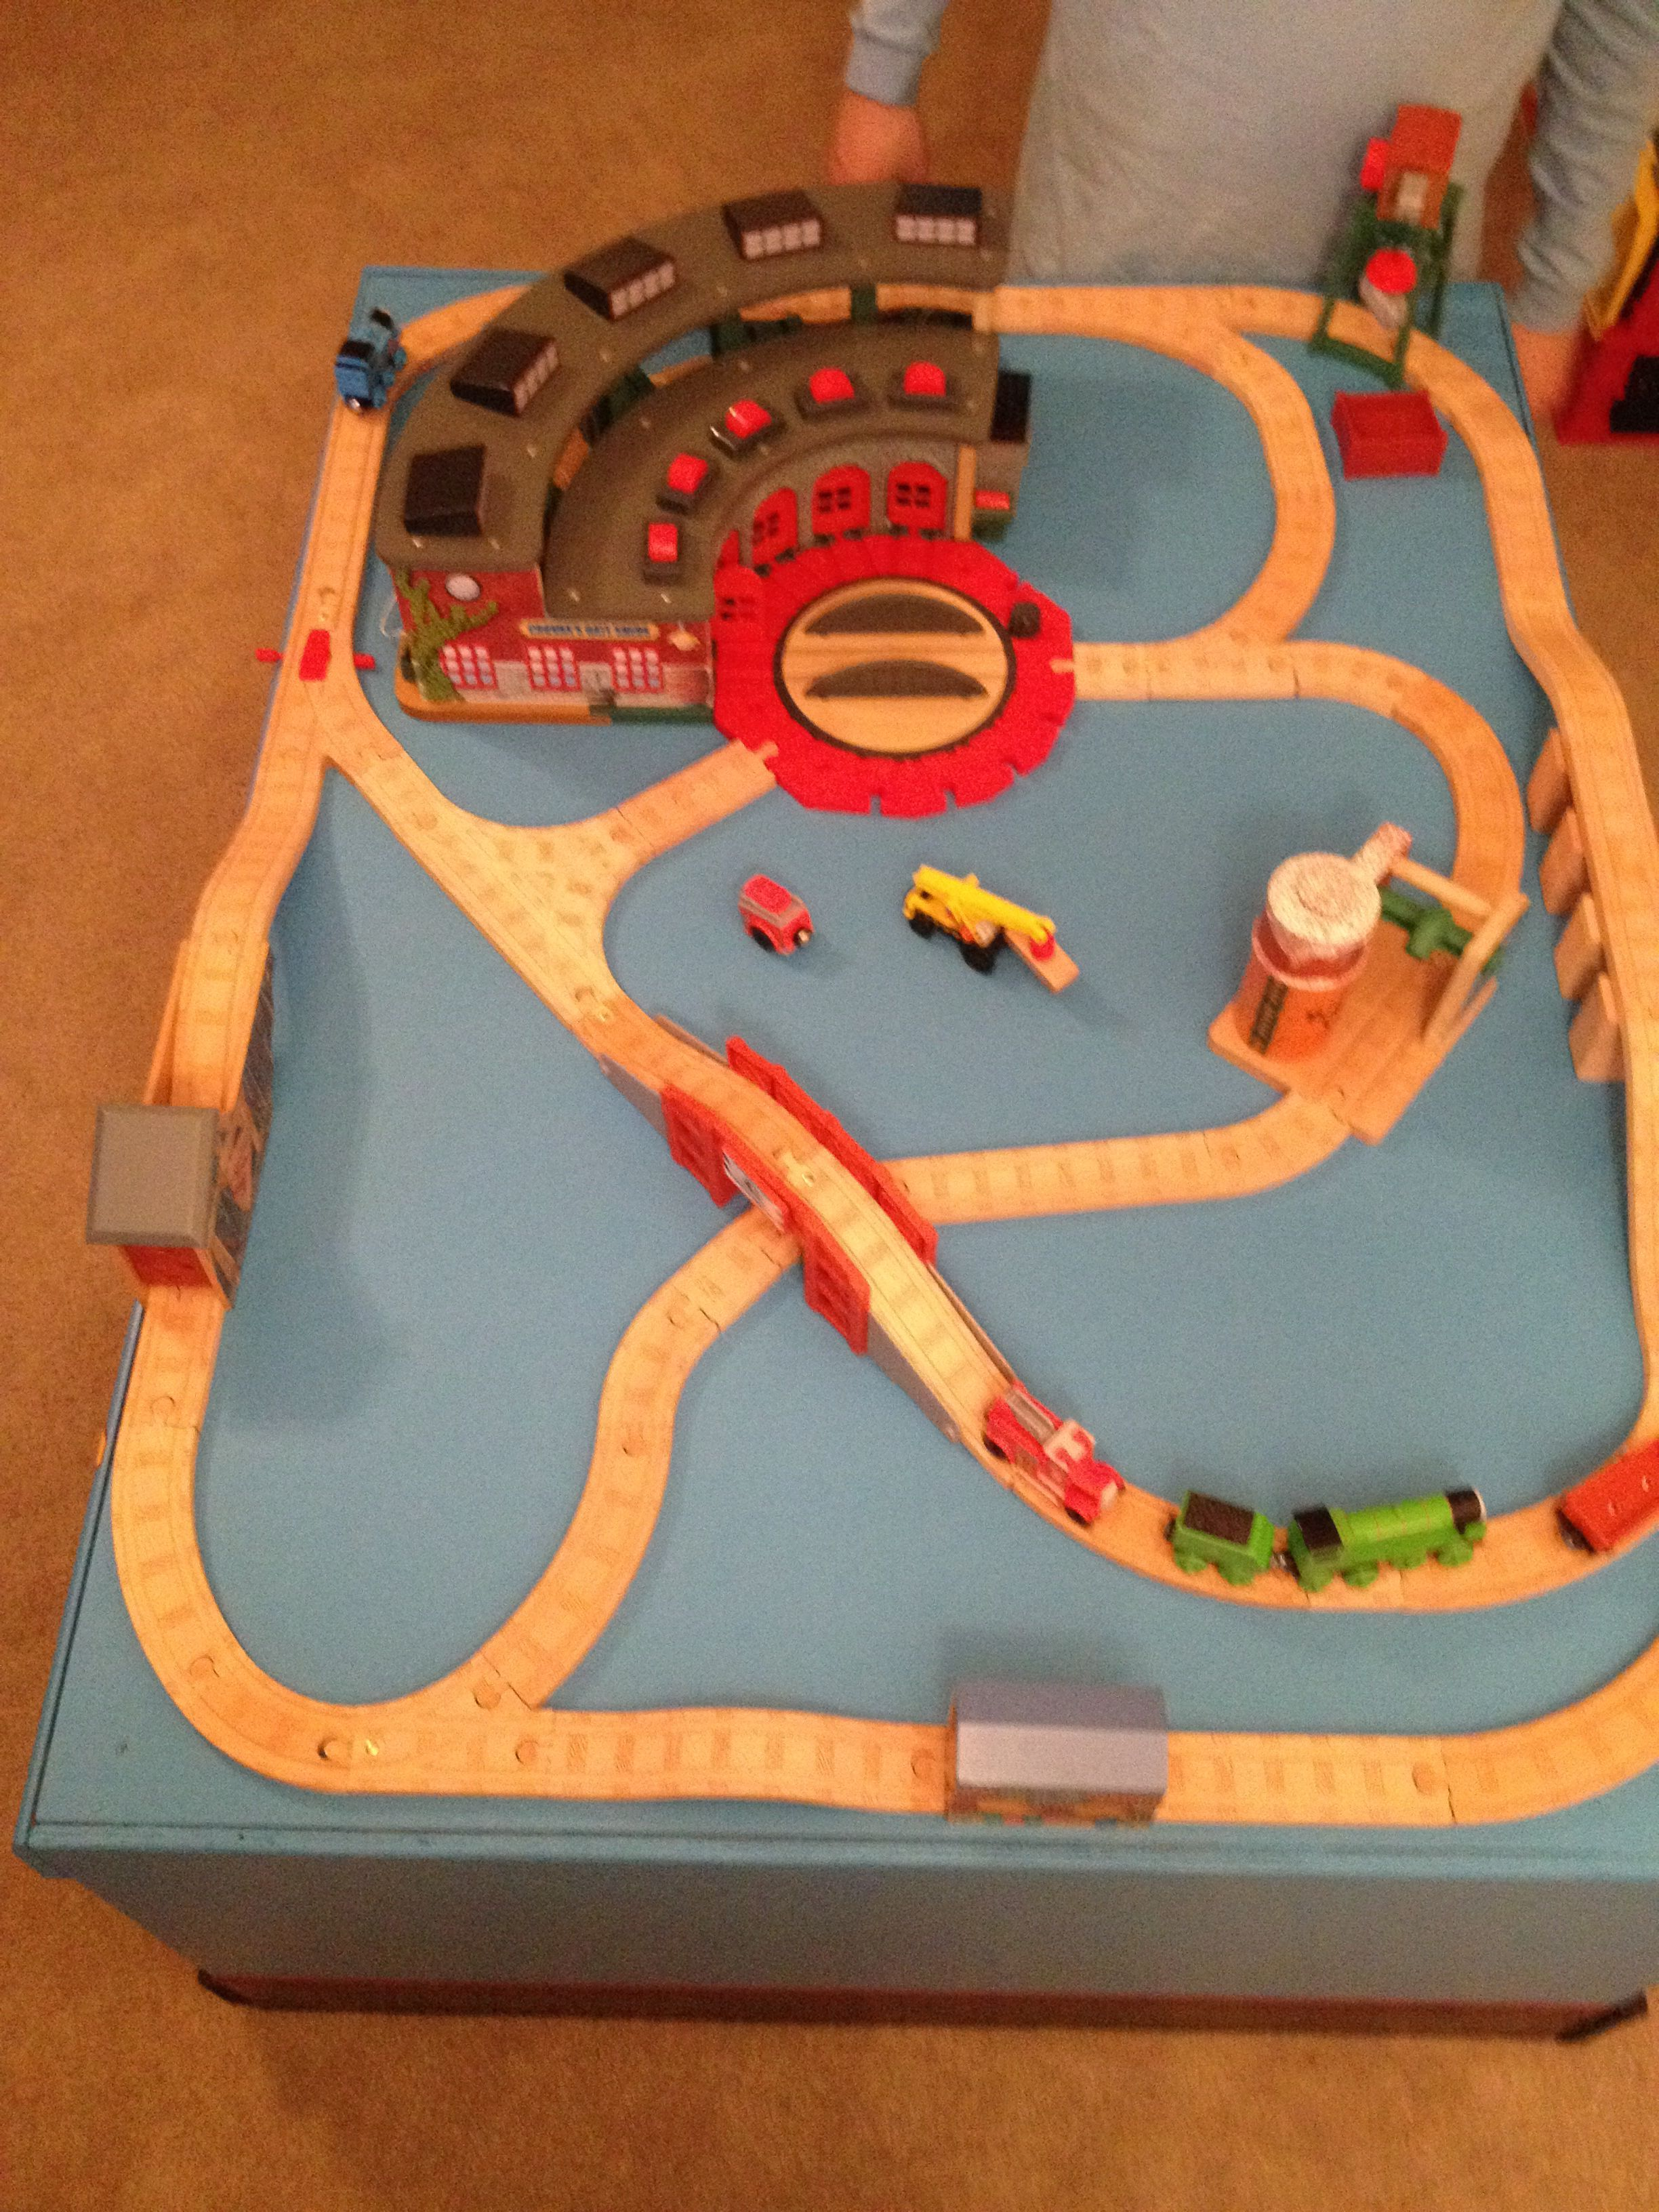 Thomas the train table layout - initial & Thomas the train table layout - initial | Model Train Table ...